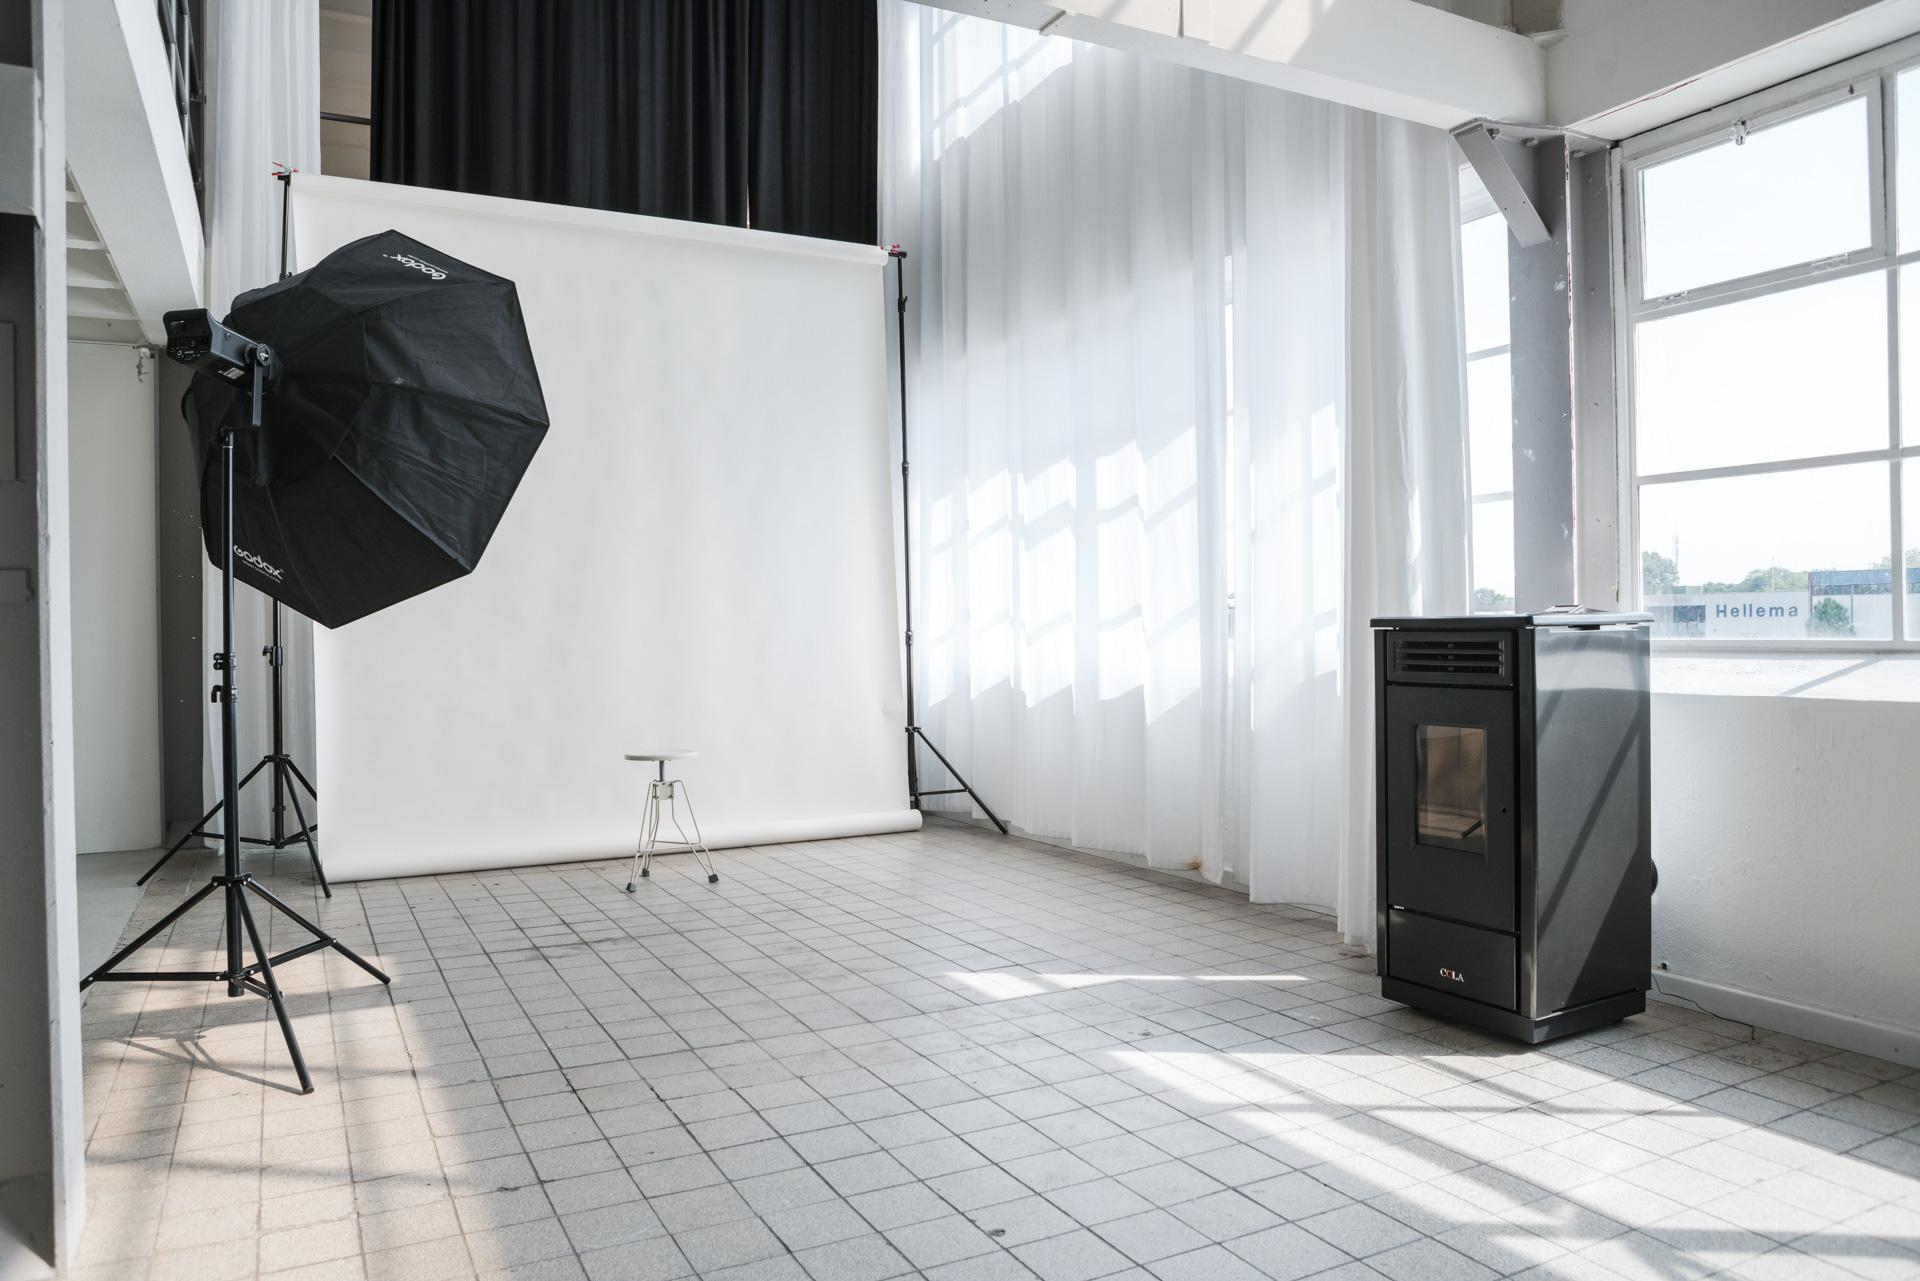 photo/video studio for rent - call for inquiries:+31641827884or+31646432043